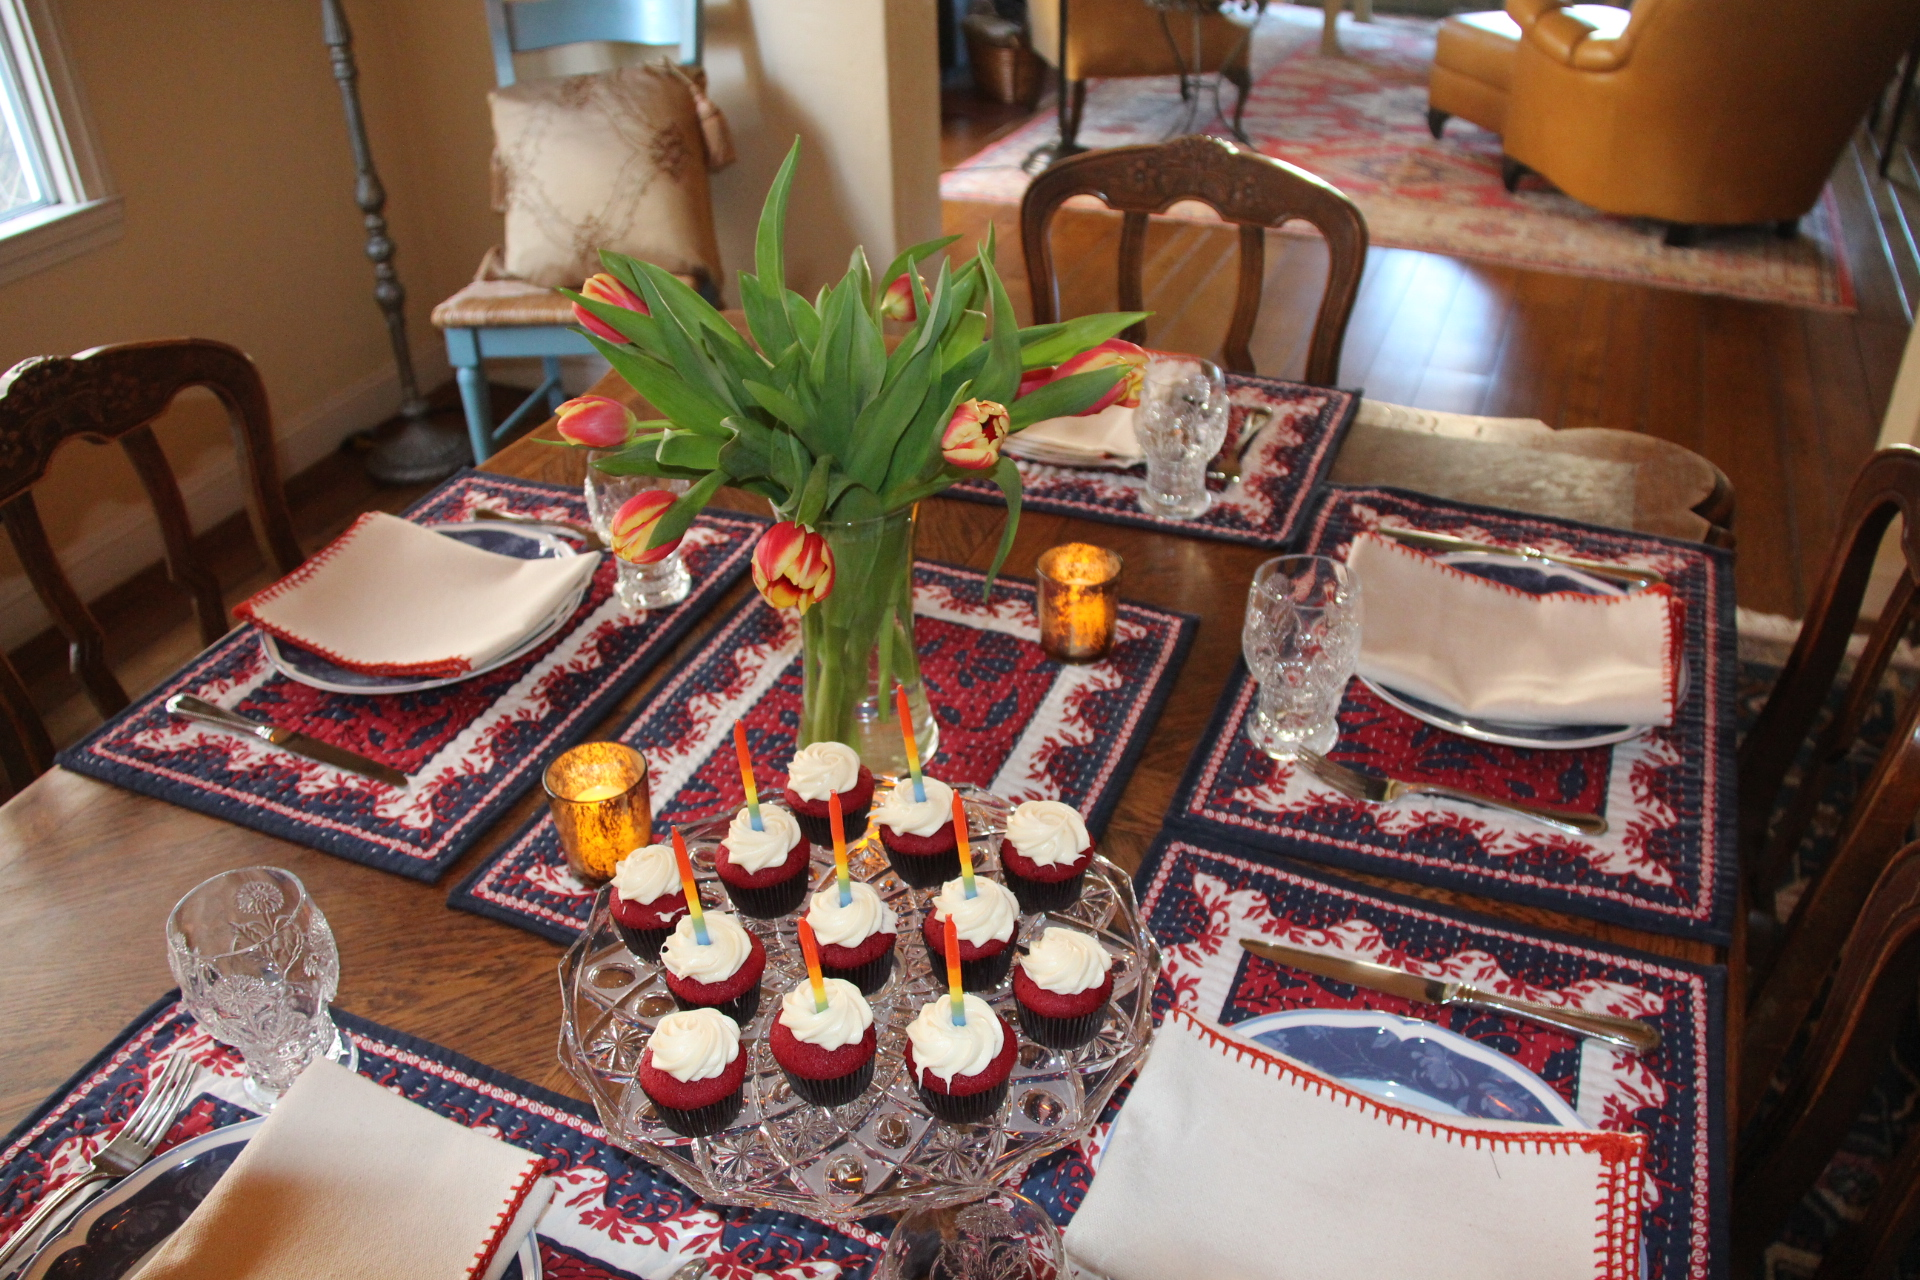 Keeping It Simple For A 70th Birthday Party